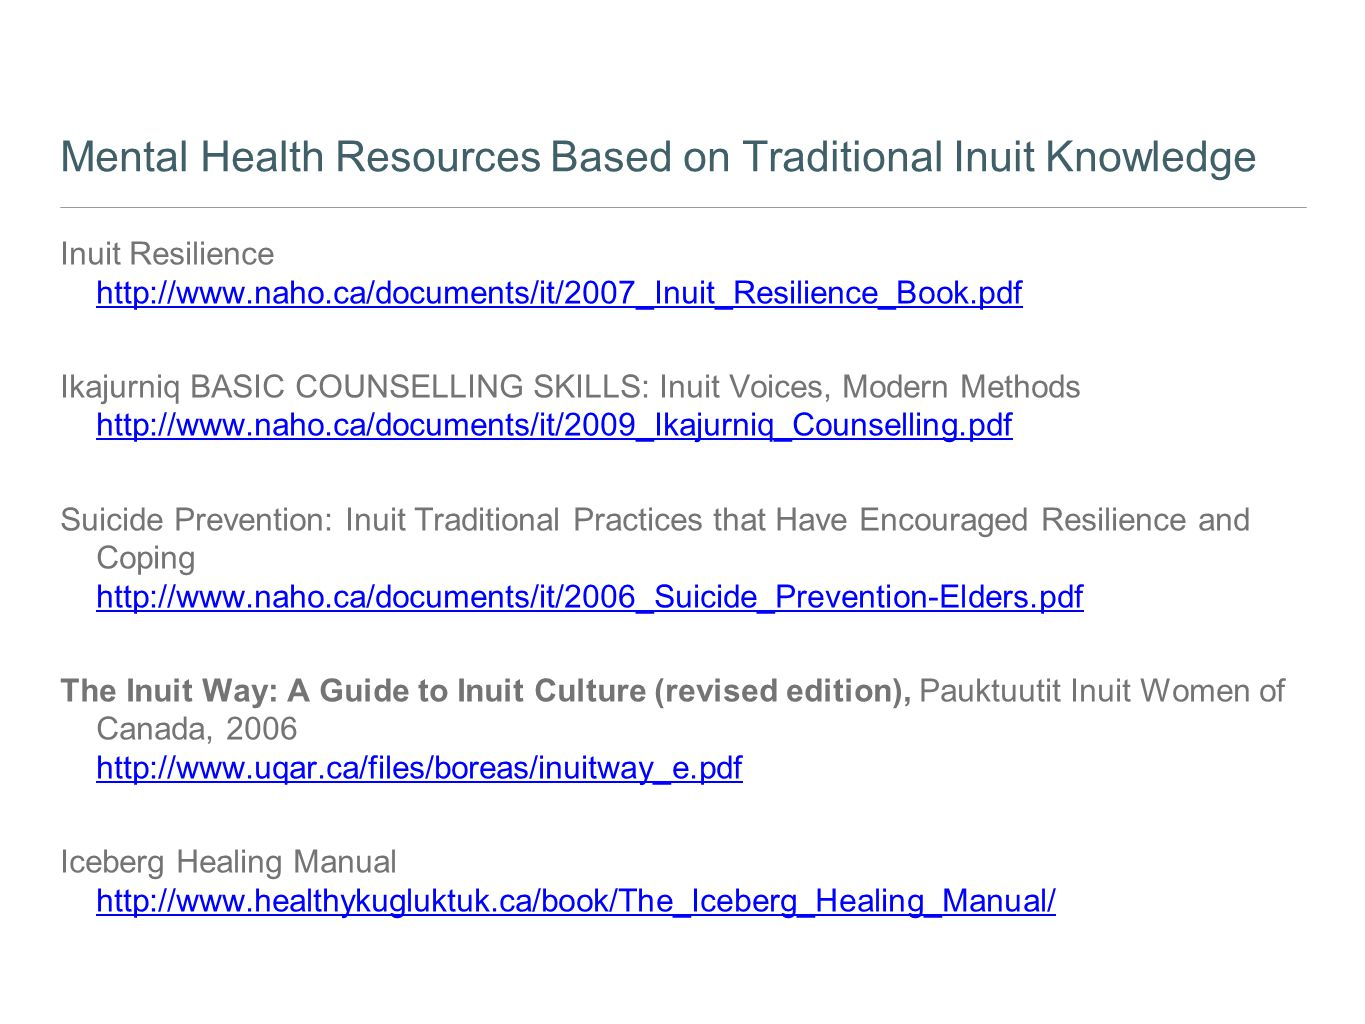 Mental Health Resources Based on Traditional Inuit Knowledge